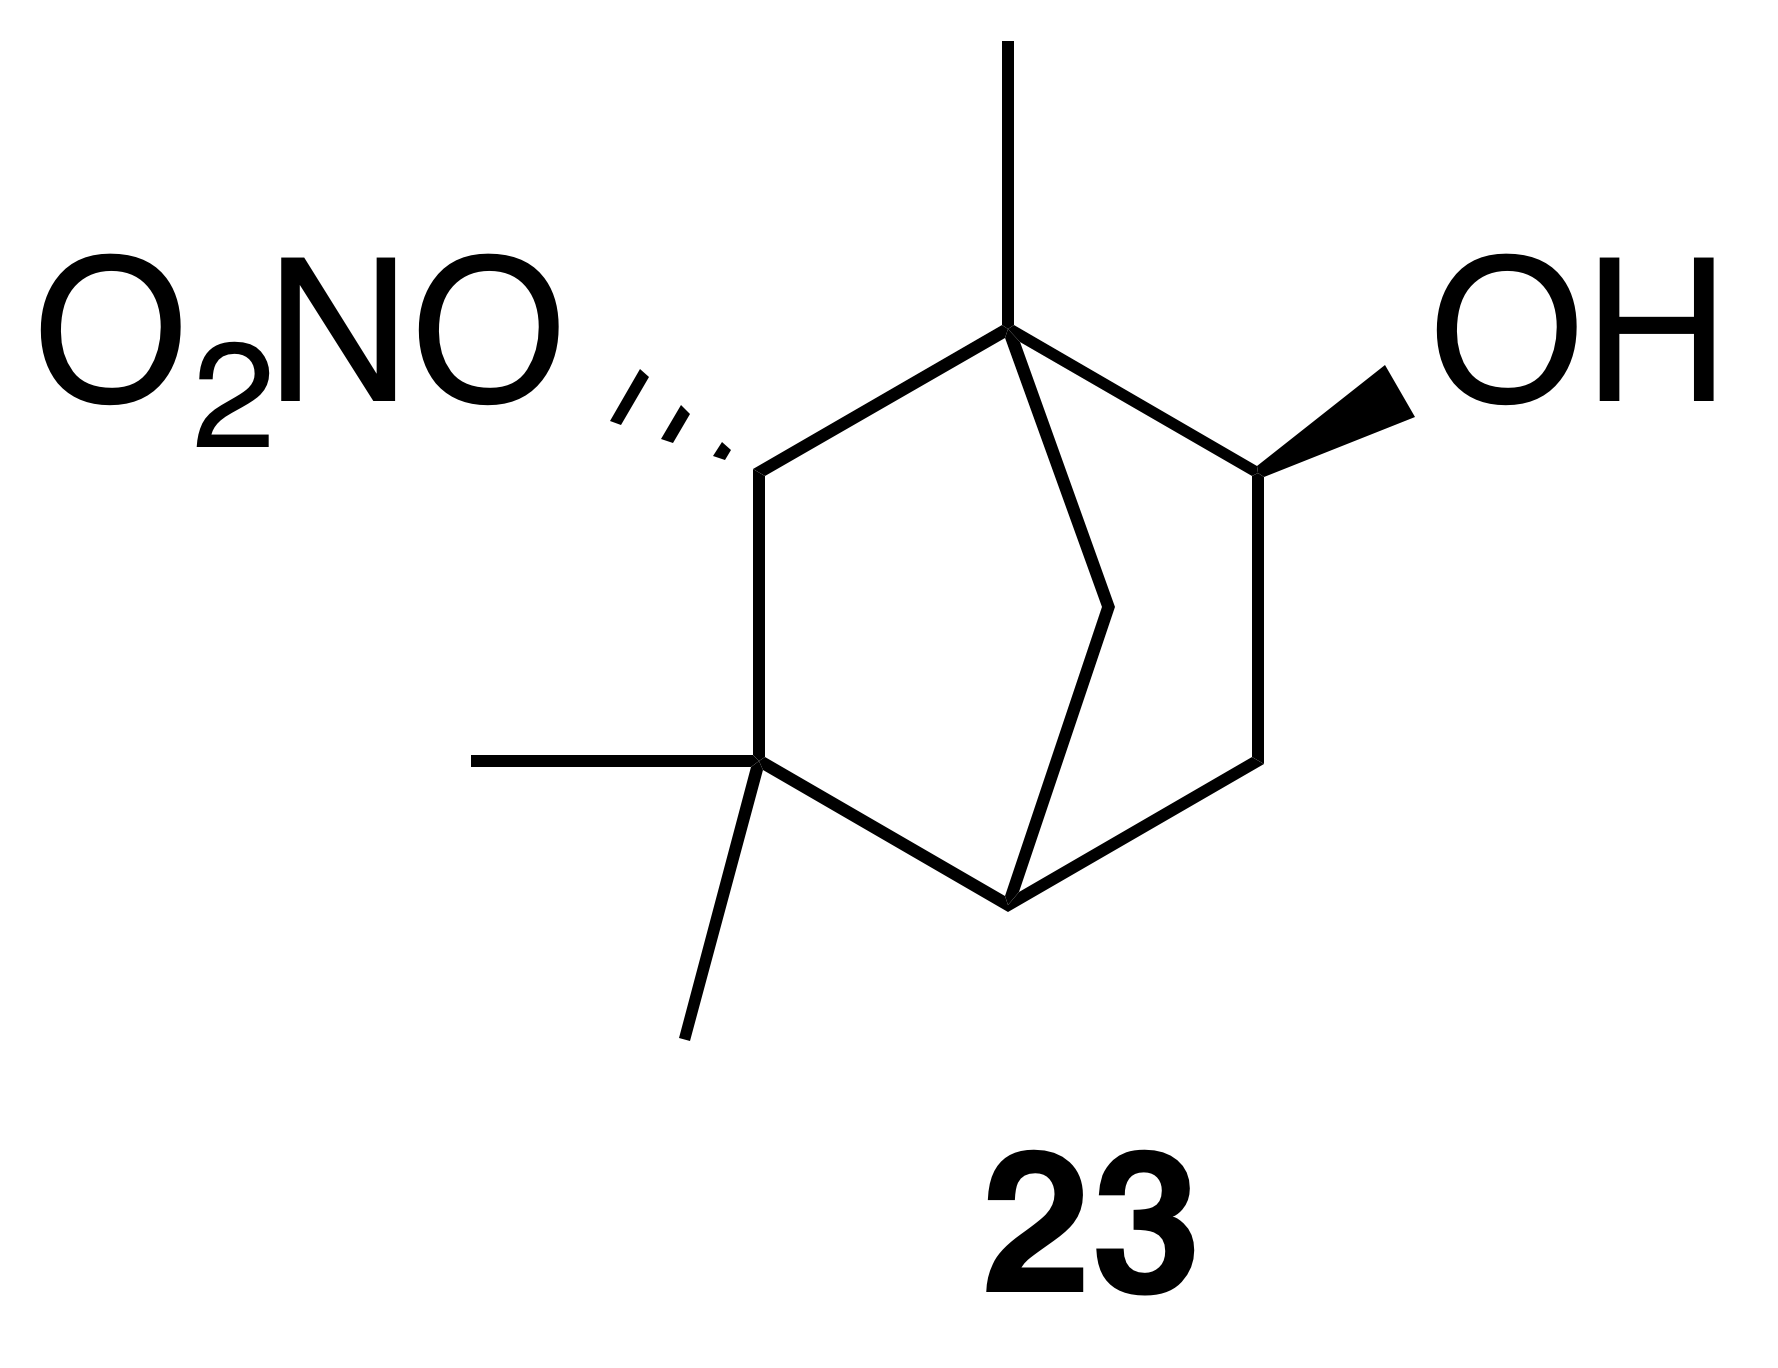 https://www.atmos-chem-phys.net/20/4241/2020/acp-20-4241-2020-g20